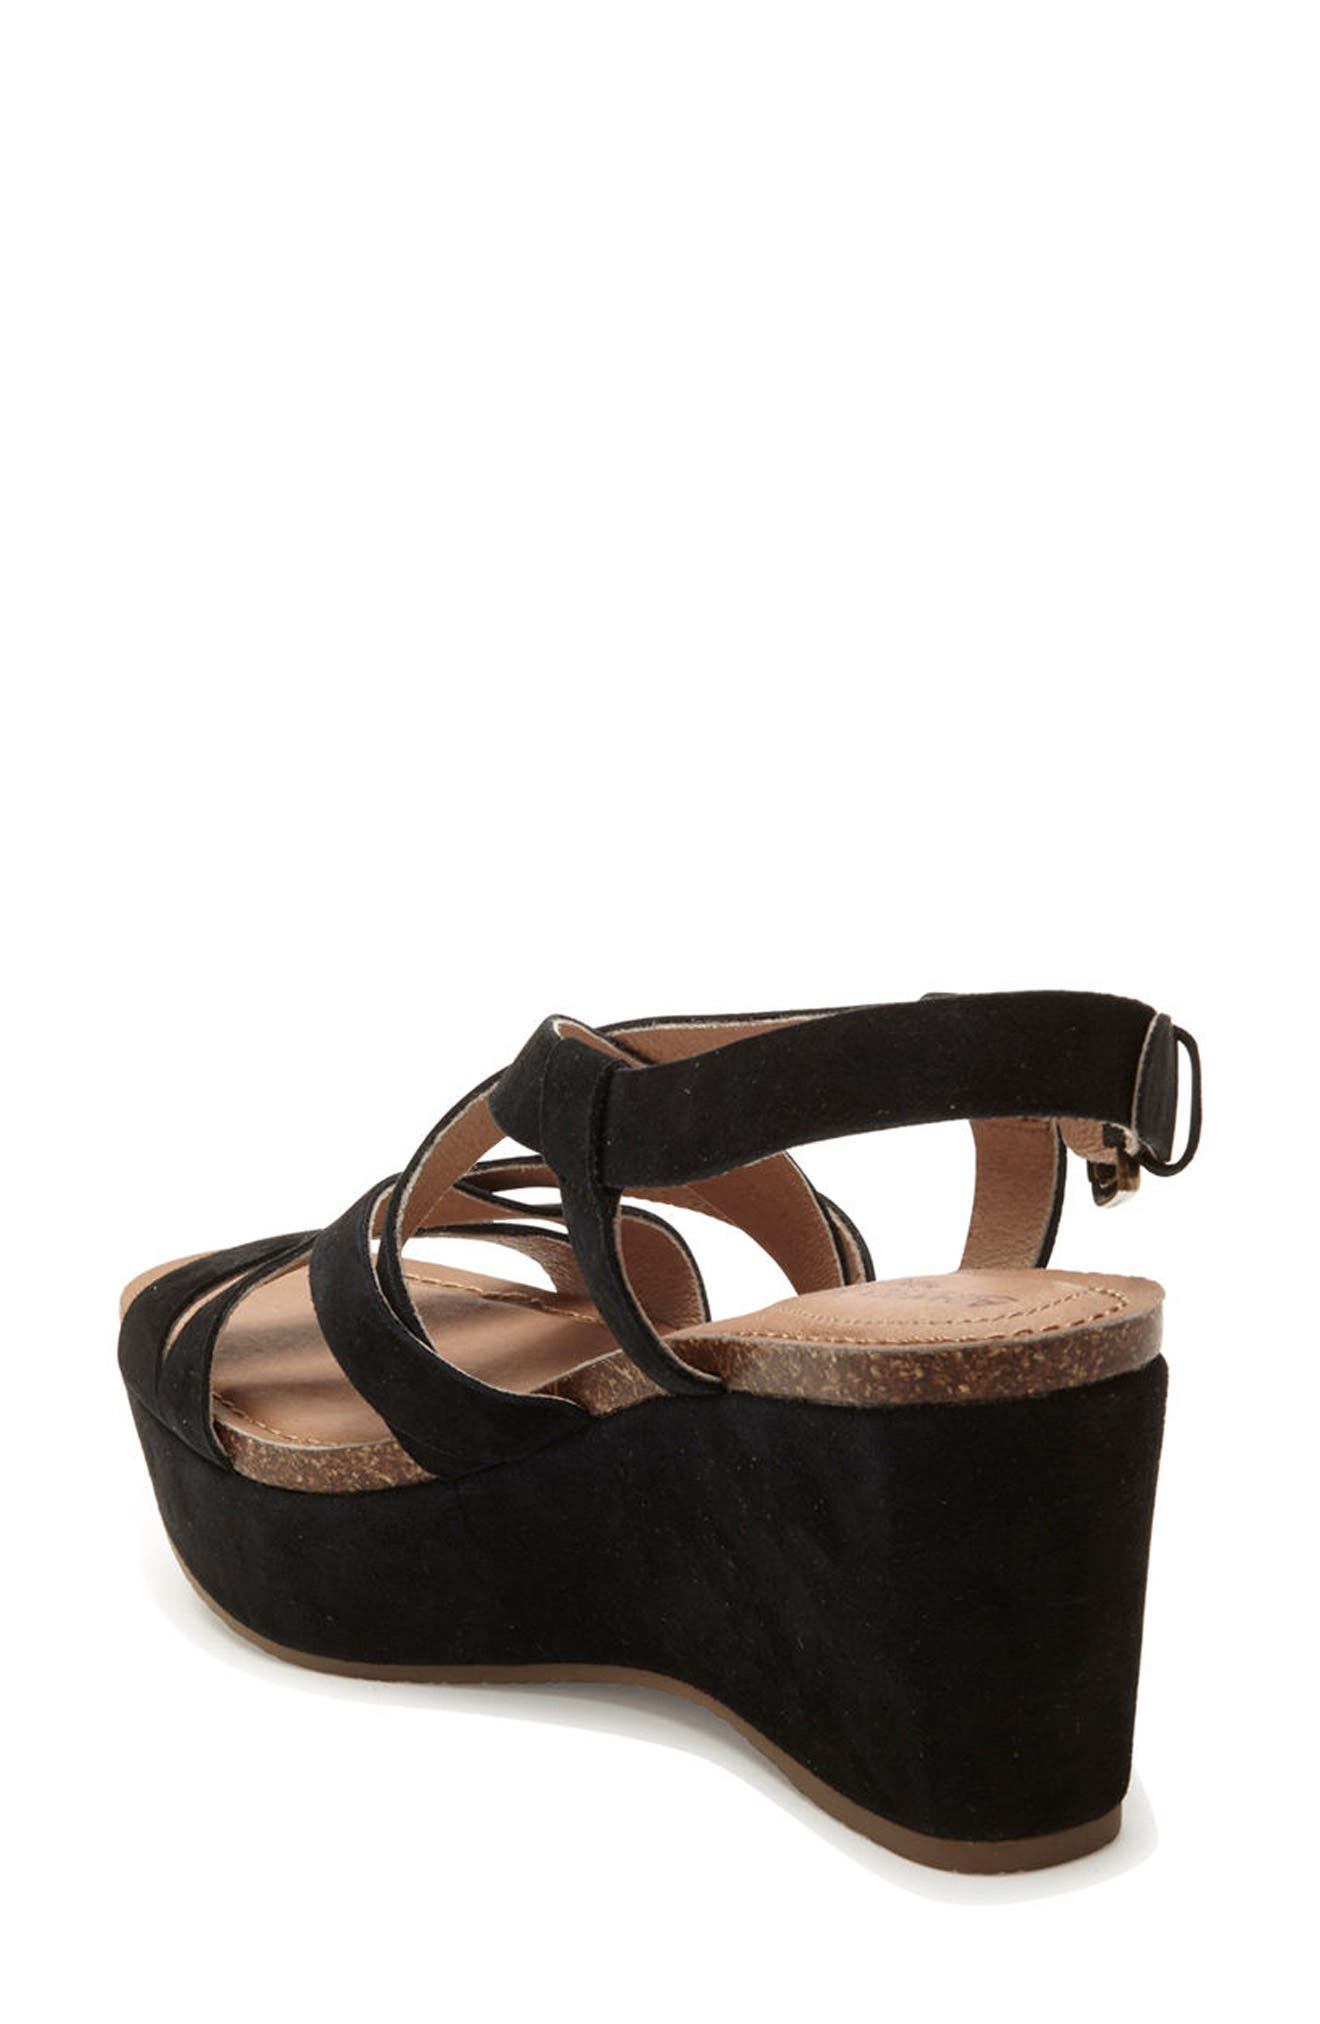 Adam Tucker Bria Strappy Sandal,                             Alternate thumbnail 2, color,                             Black Suede